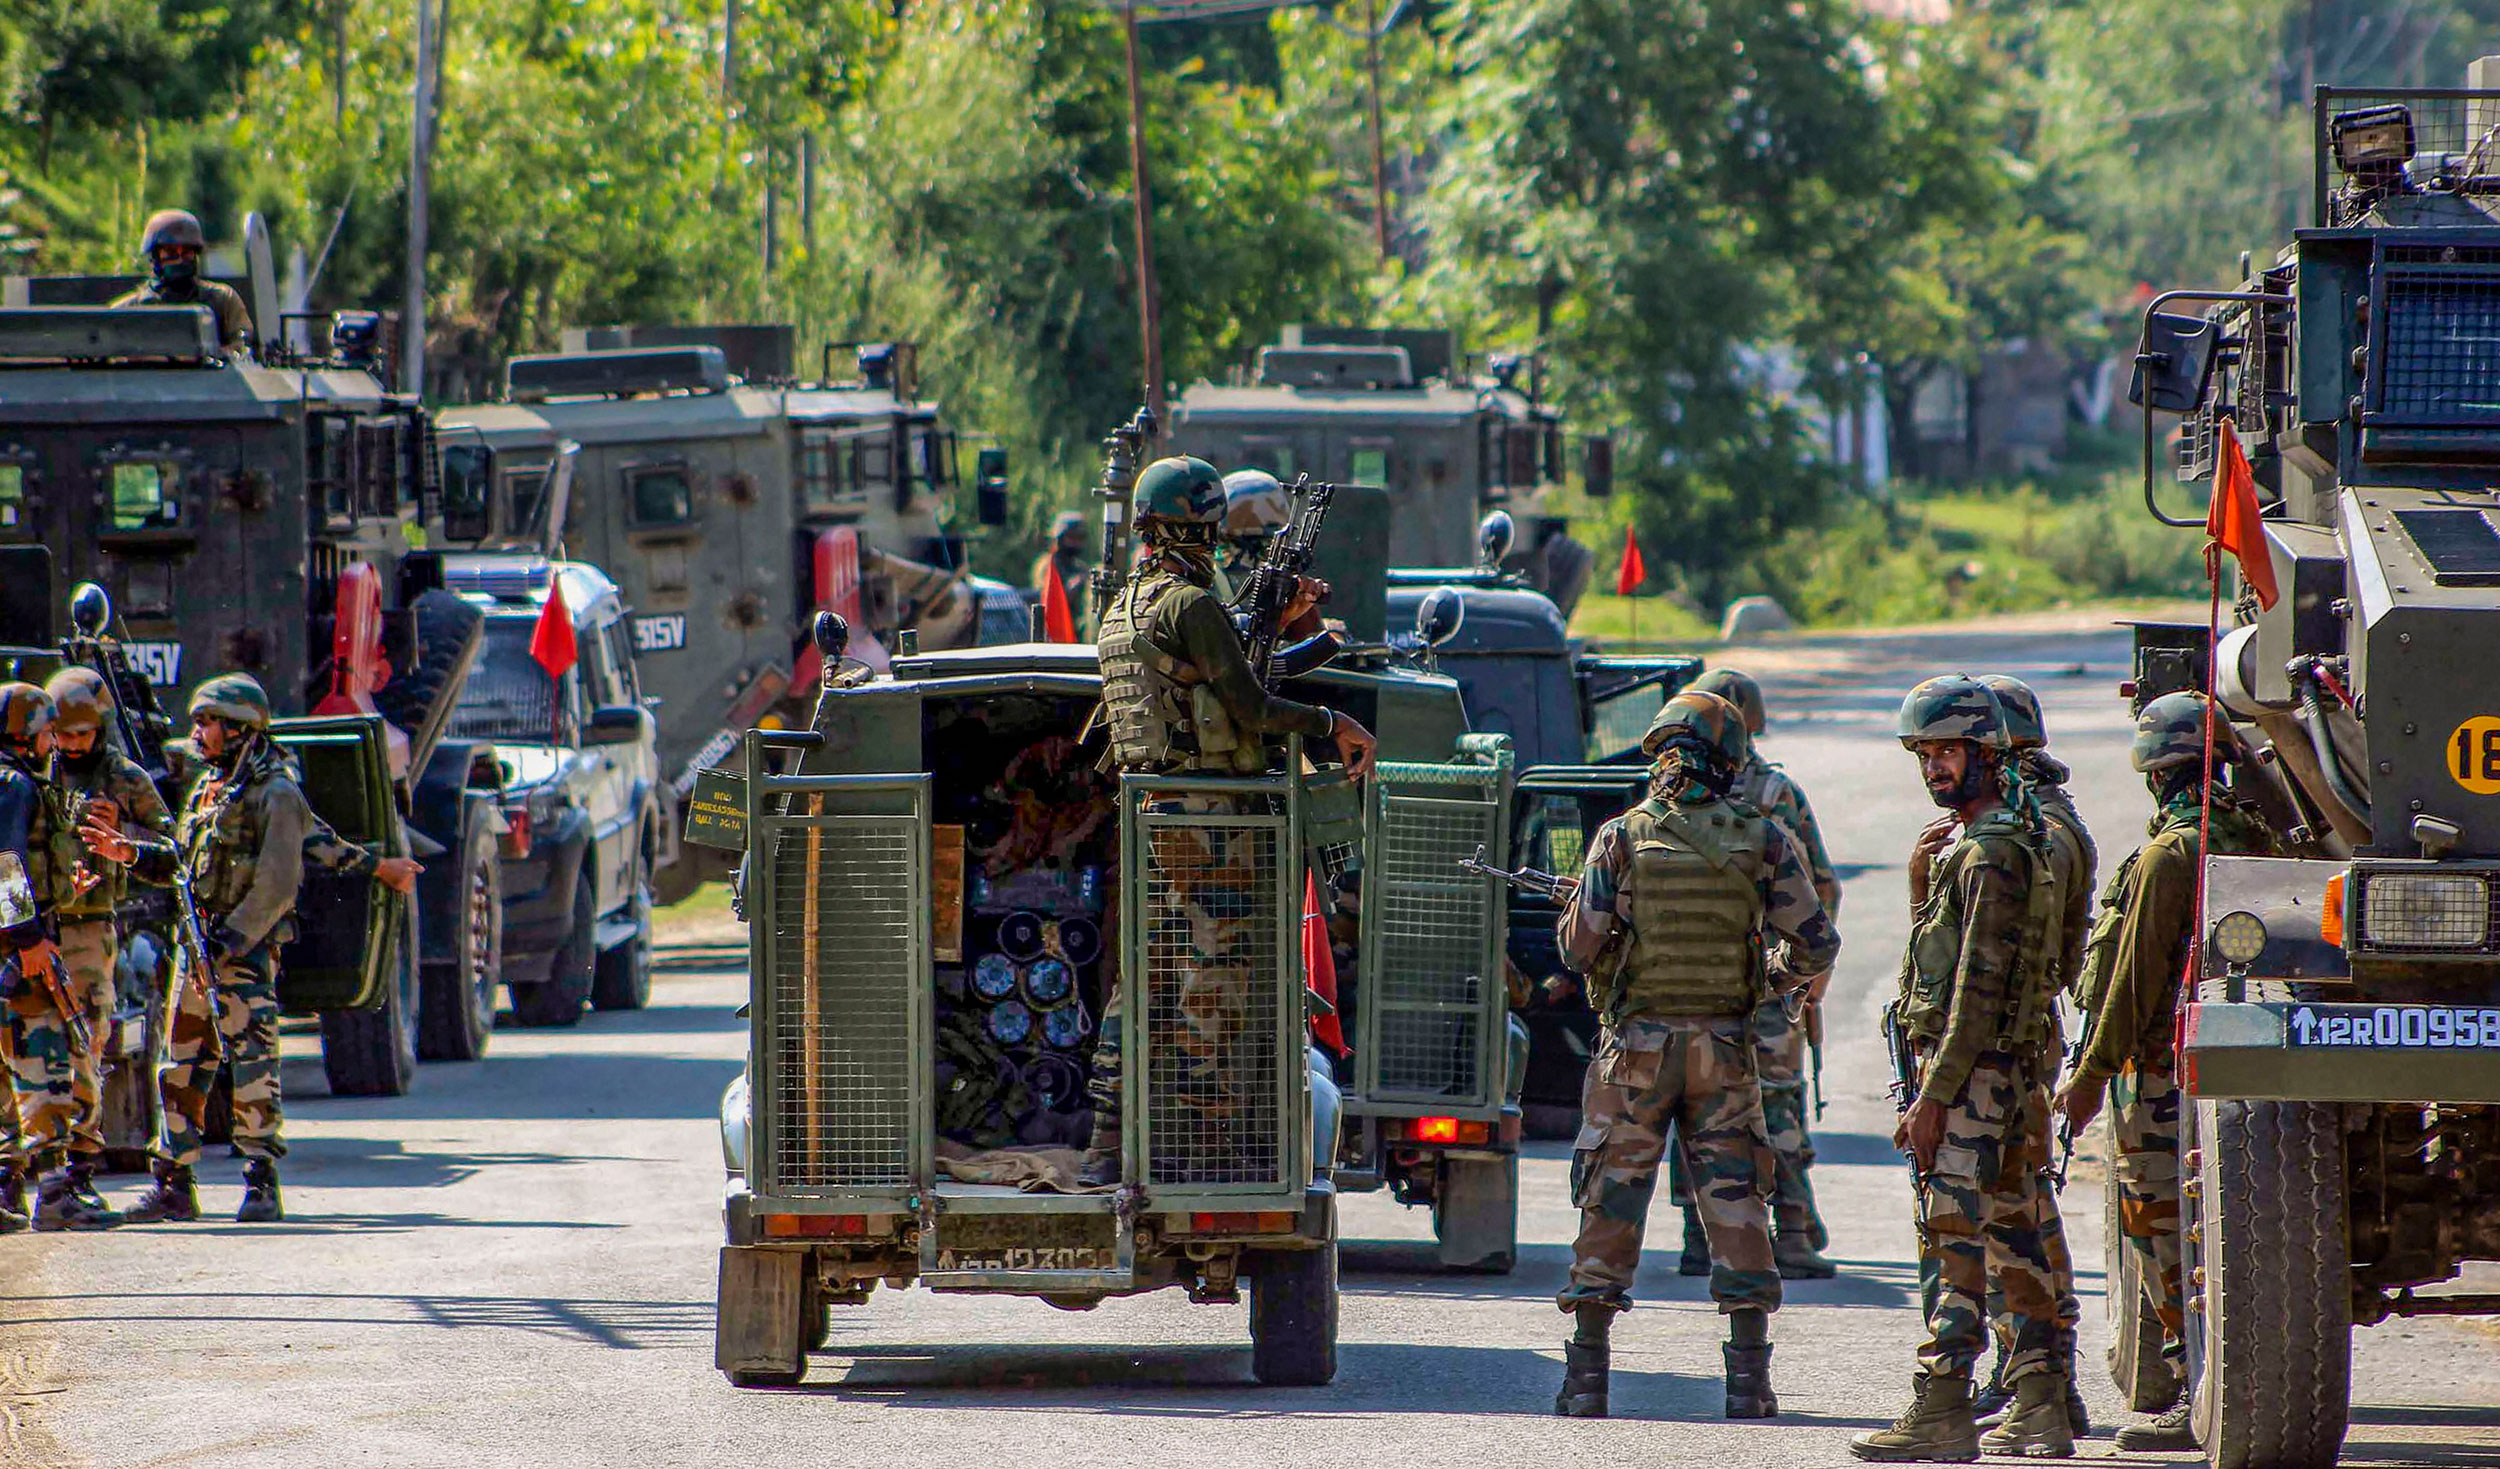 Army soldiers cordon off the area near the house in where the militants were hiding during the encounter in Anantnag on June 17, 2019.